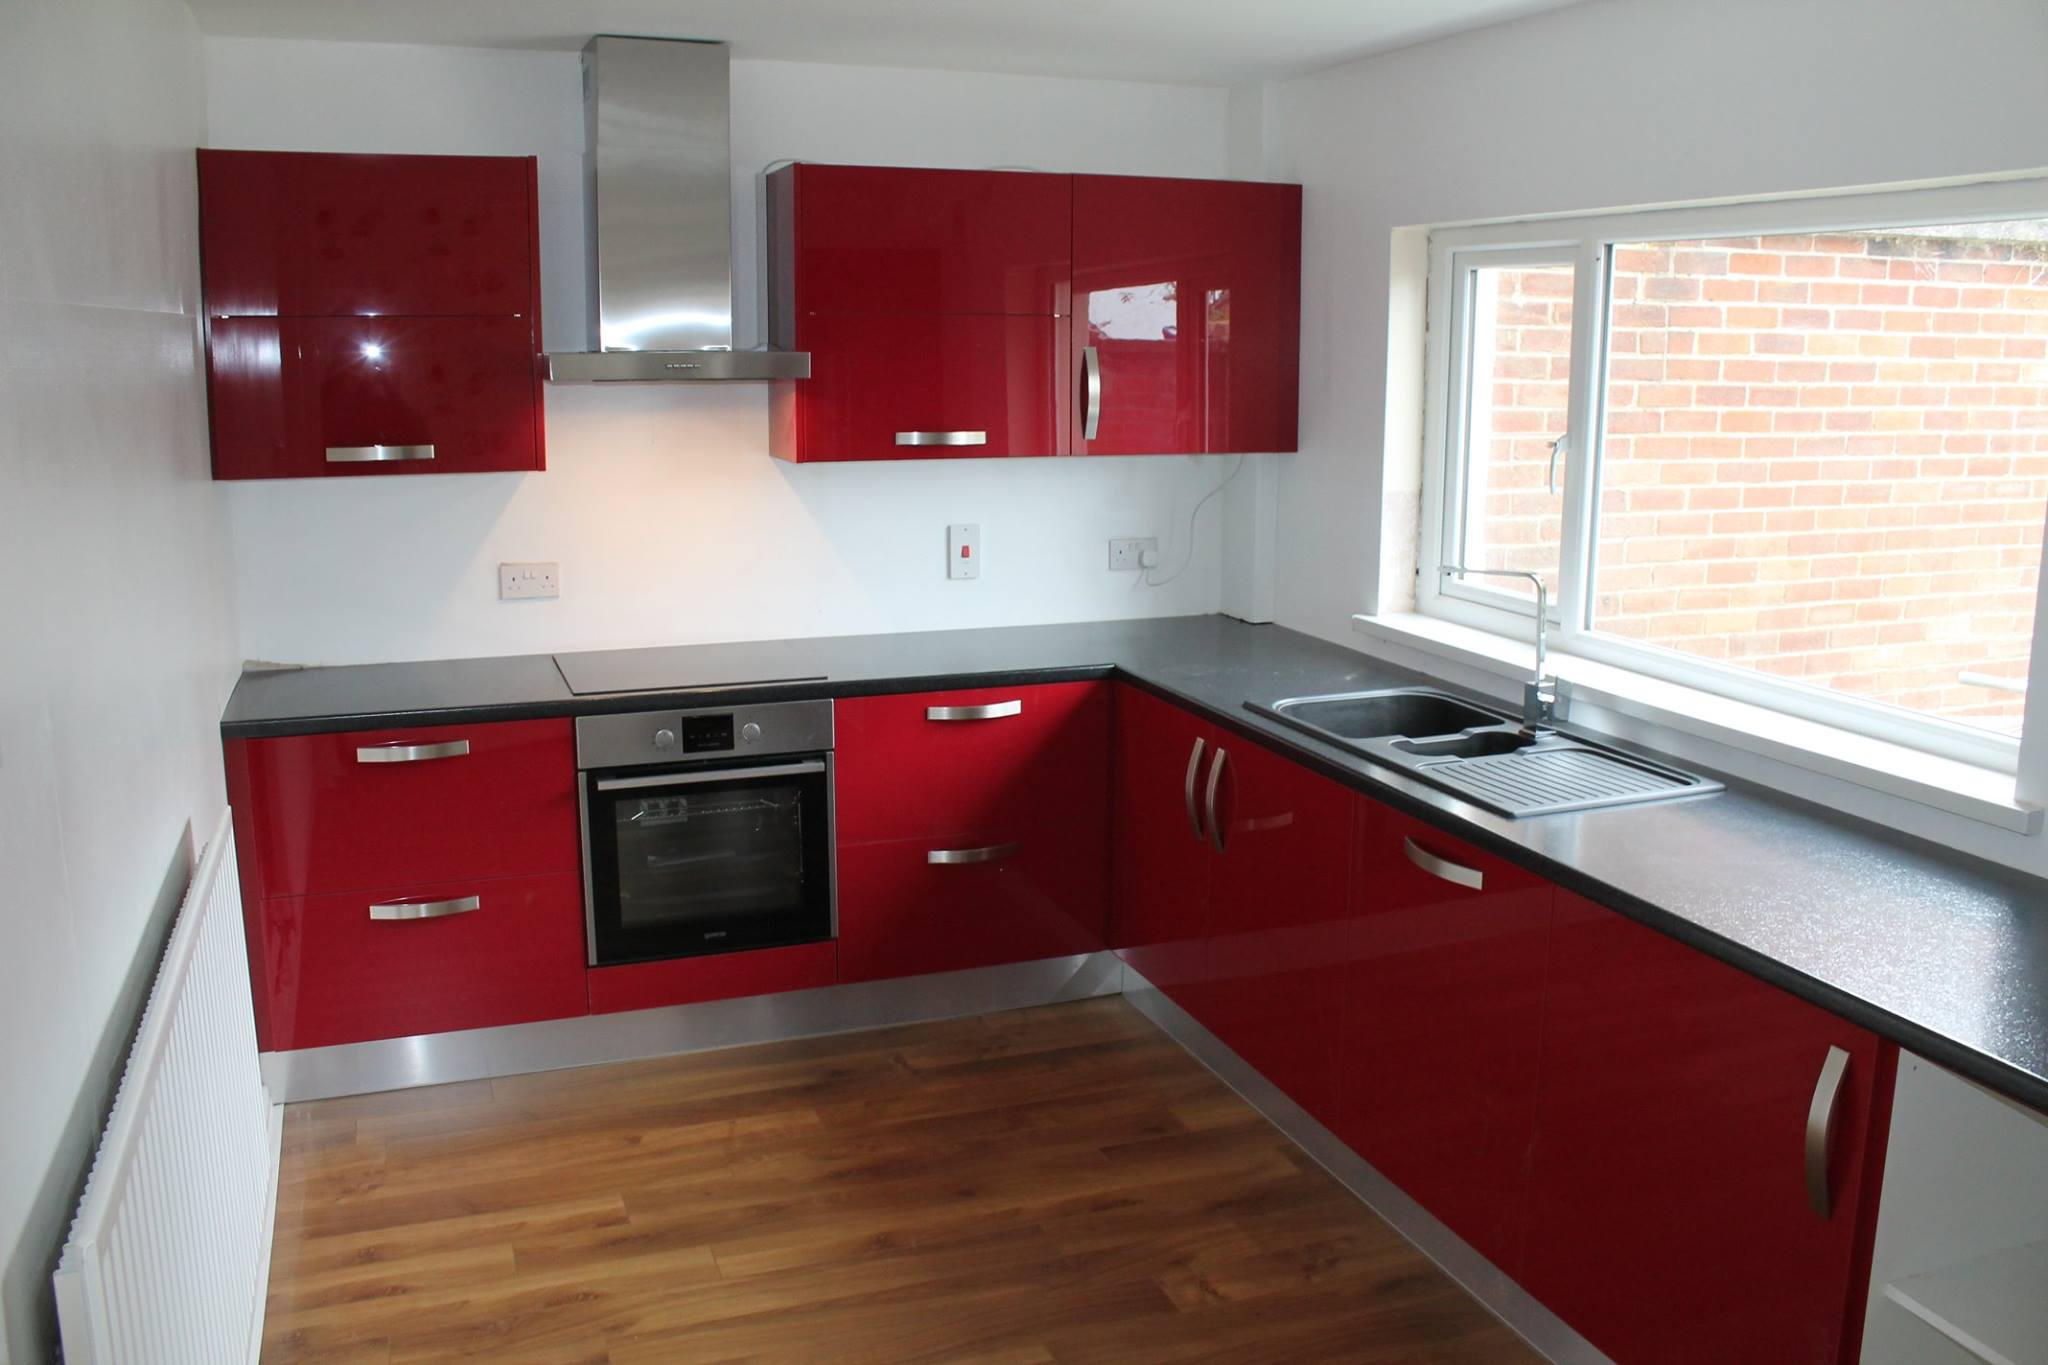 Kitchen With Red Appliances Real Kitchens Olooco